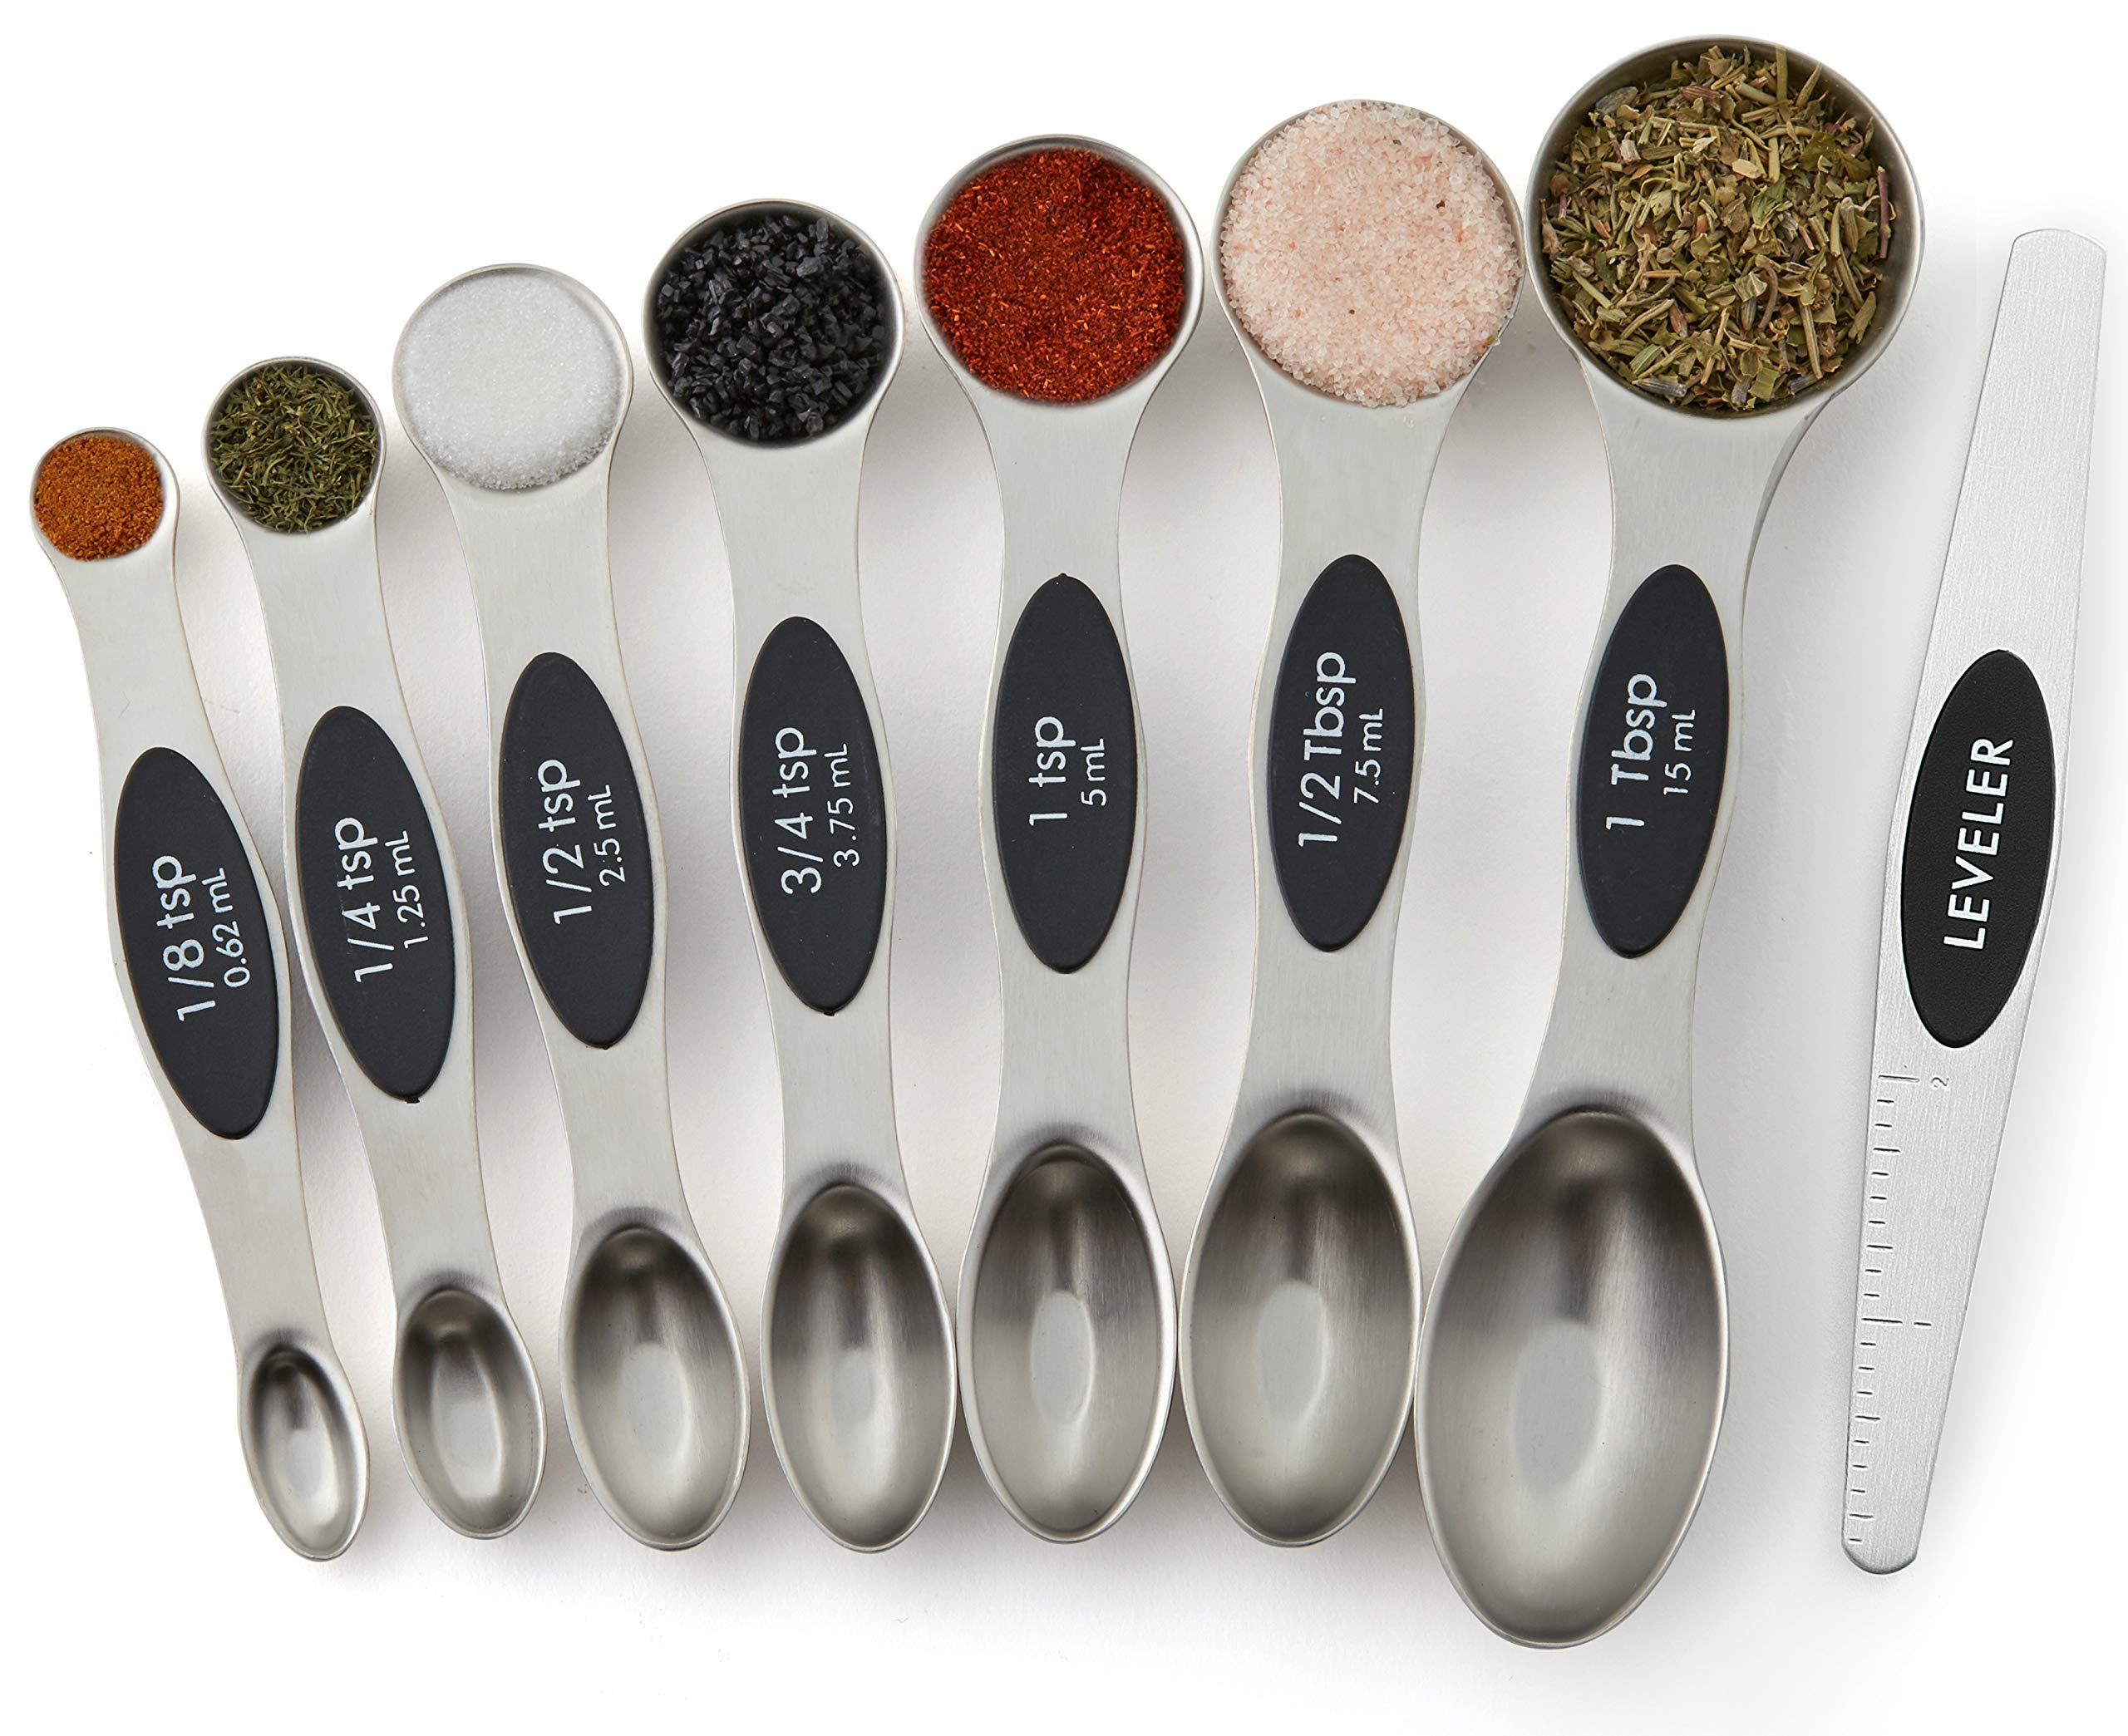 Spring Chef Magnetic Measuring Spoons Set, Dual Sided, Stainless Steel, Fits in Spice Jars, Set of 8 by Spring Chef